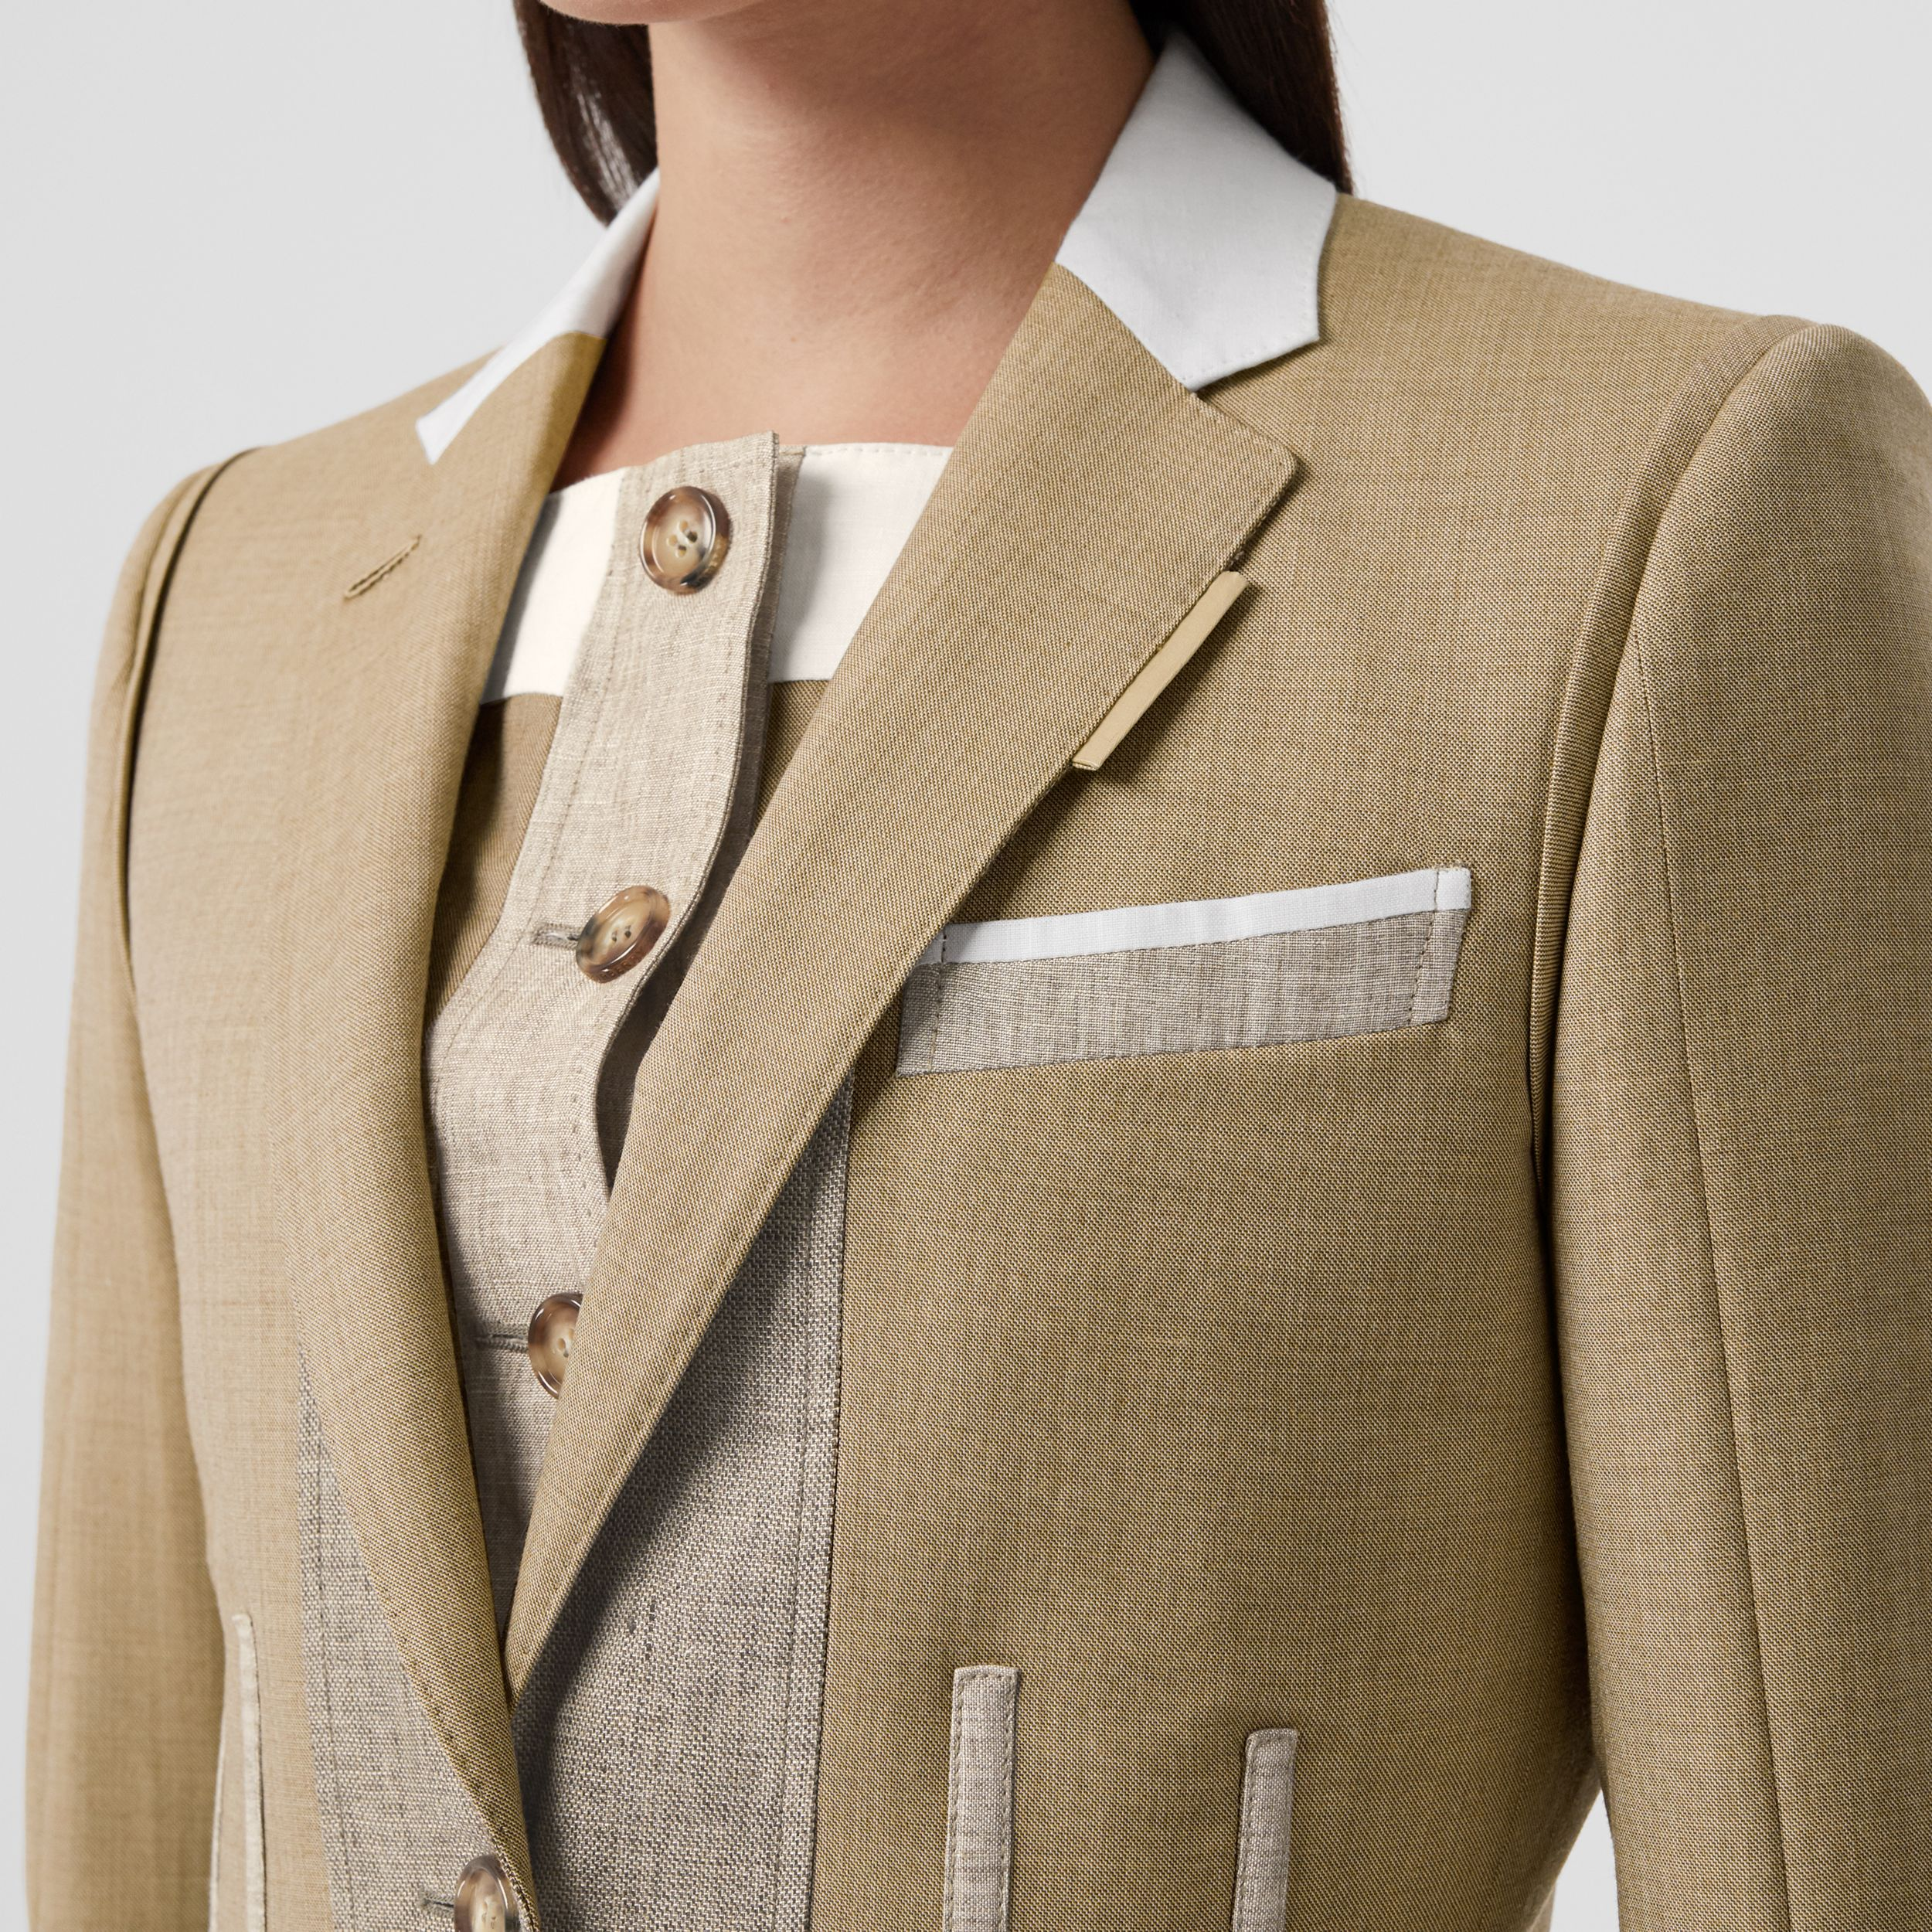 Wool Cashmere and Linen Waistcoat in Pecan Melange - Women | Burberry Australia - 2